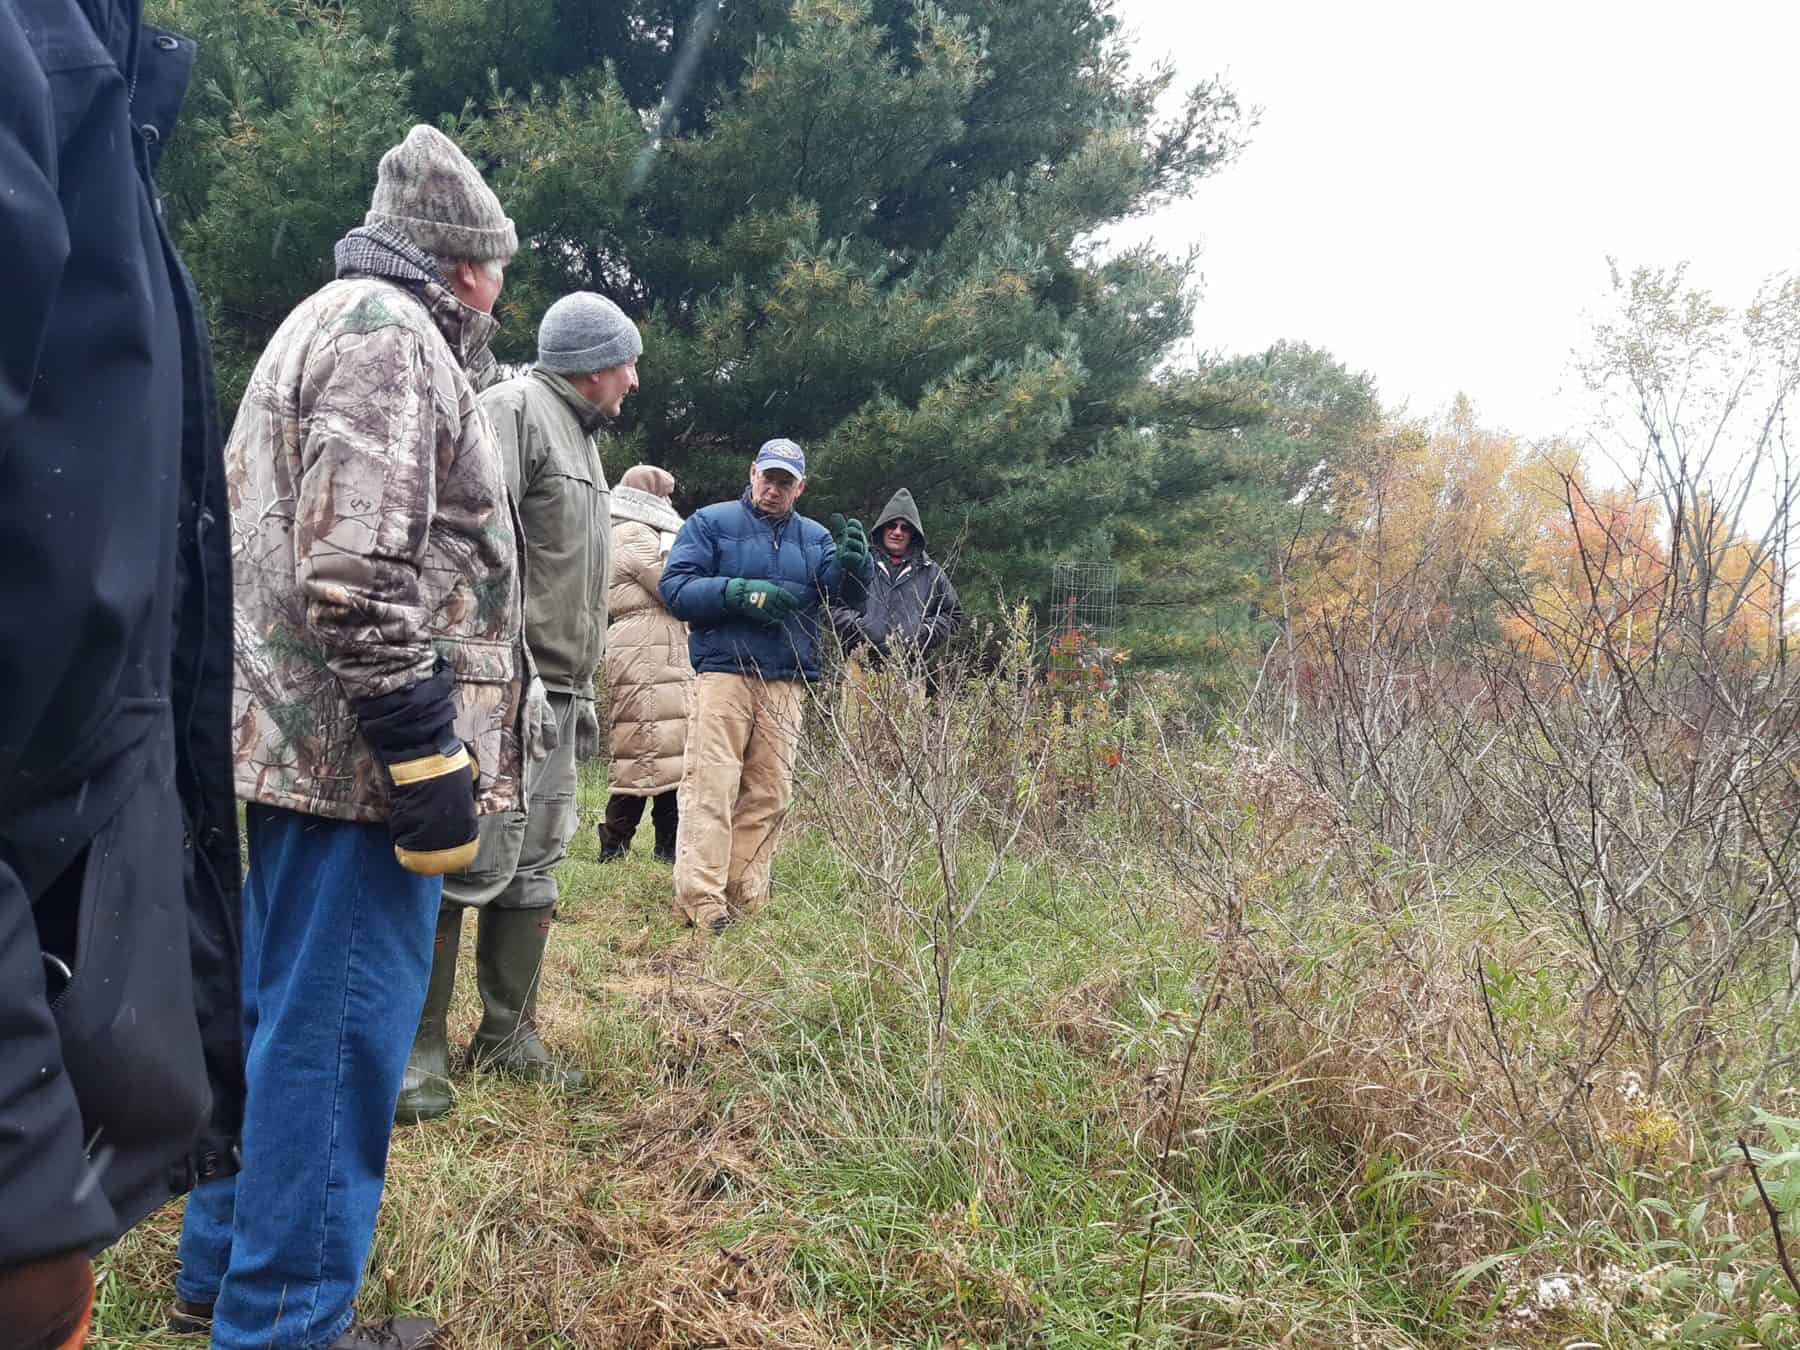 Woodland owner tour in 2019. (Photo: SCRA)